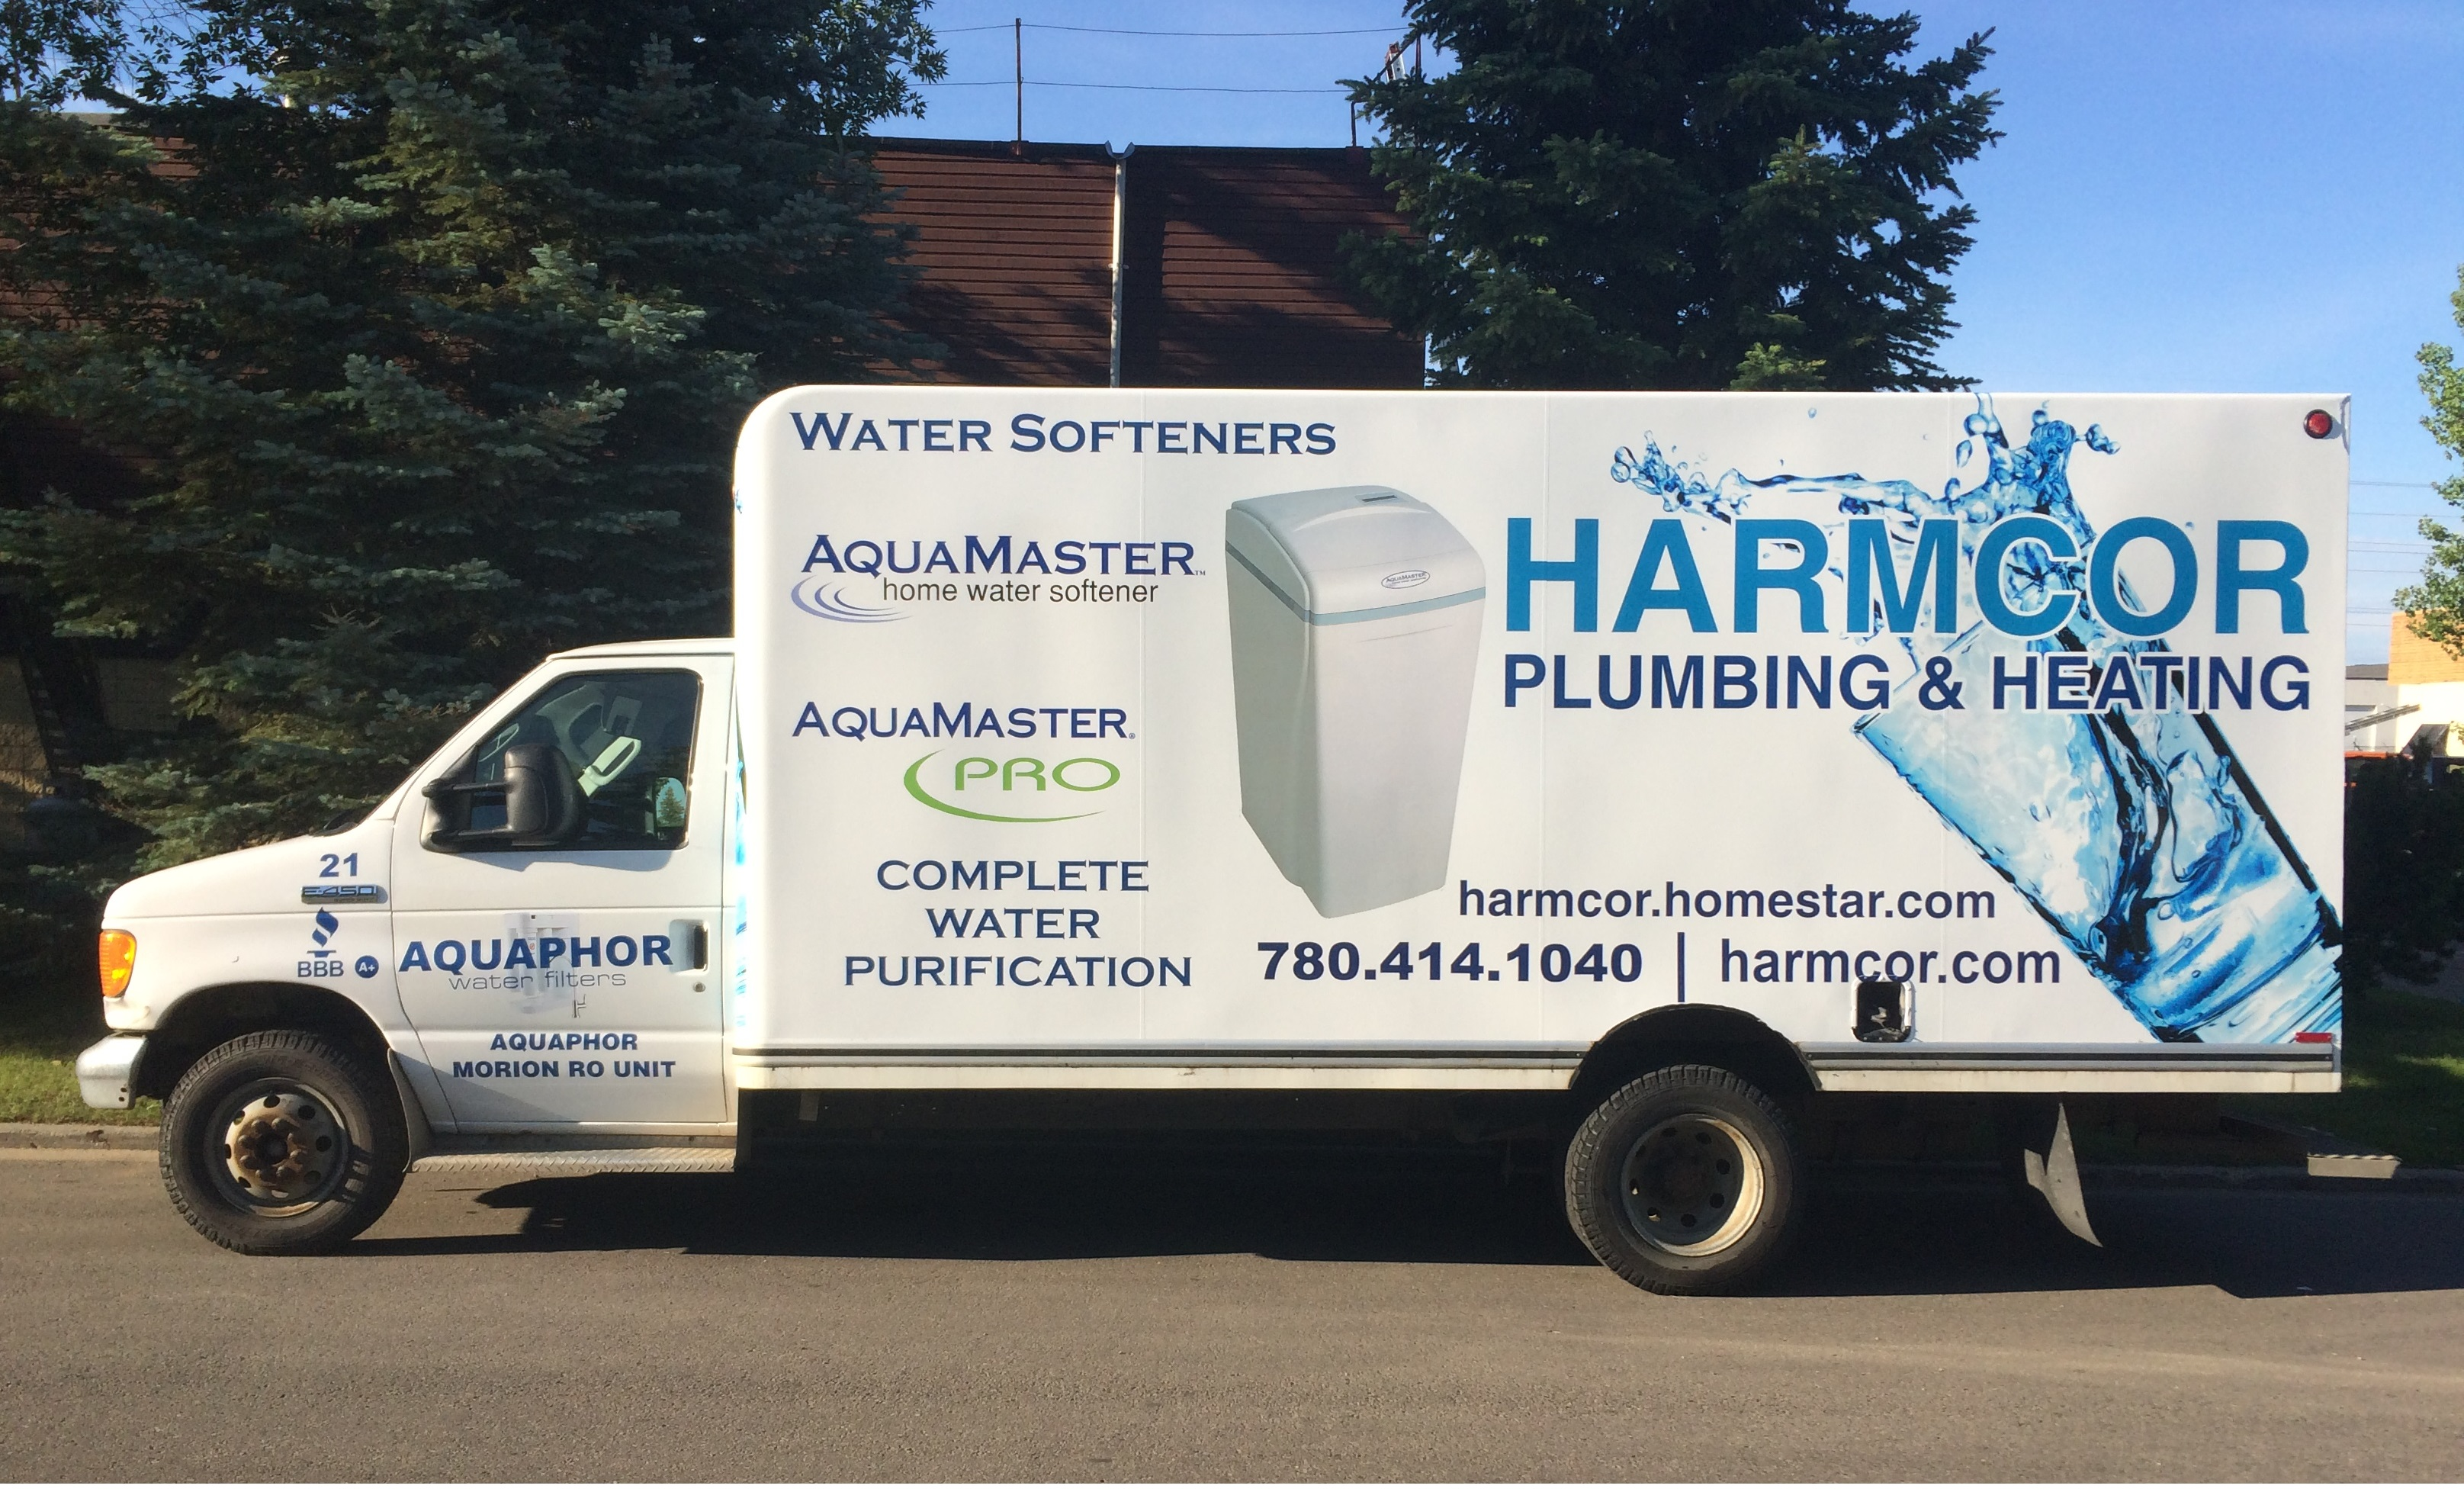 harmcor-plumbing-heating